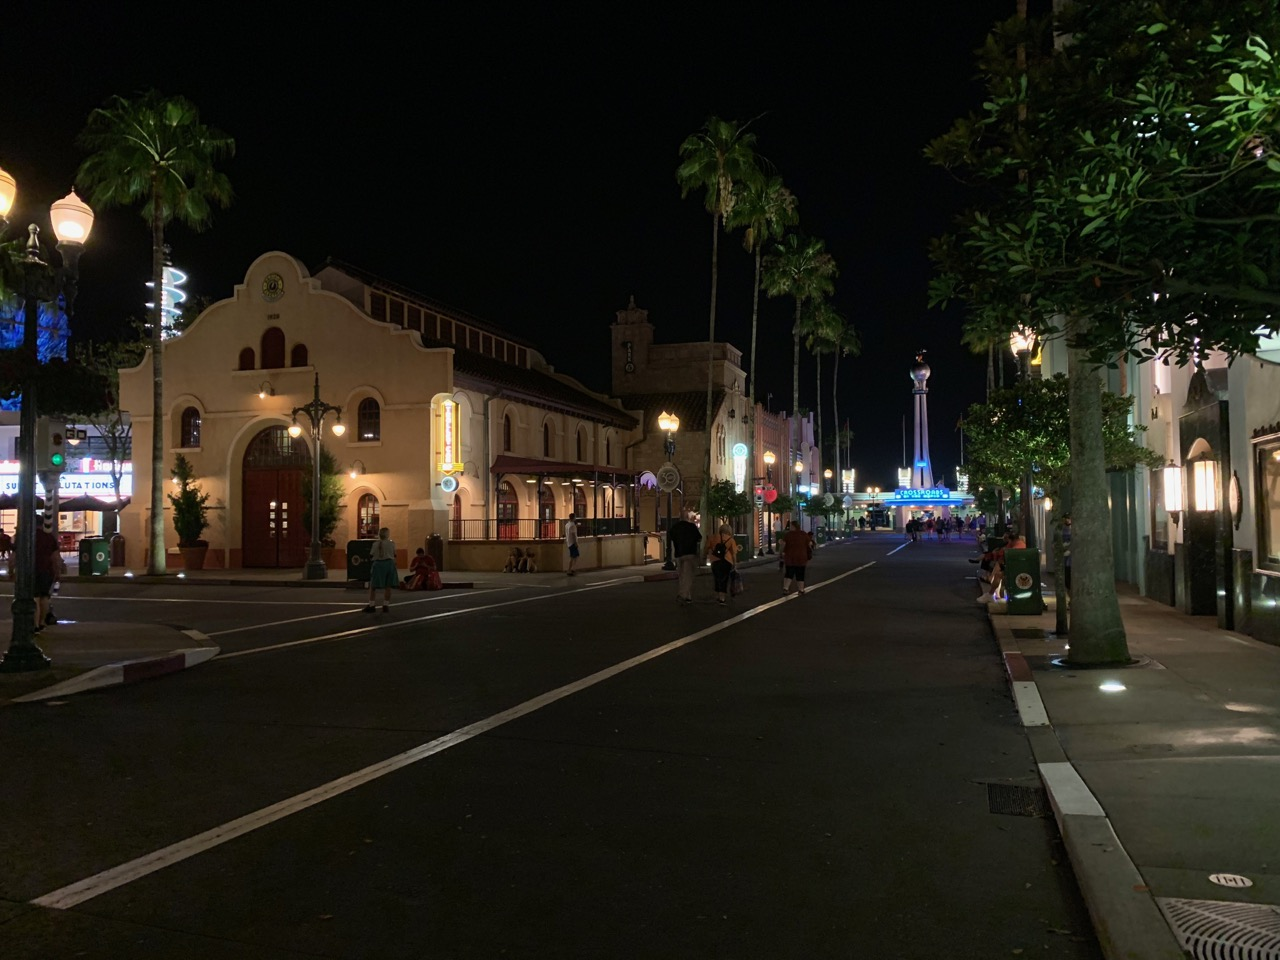 disney world hollywood studios after hours review 48 crowds.jpeg